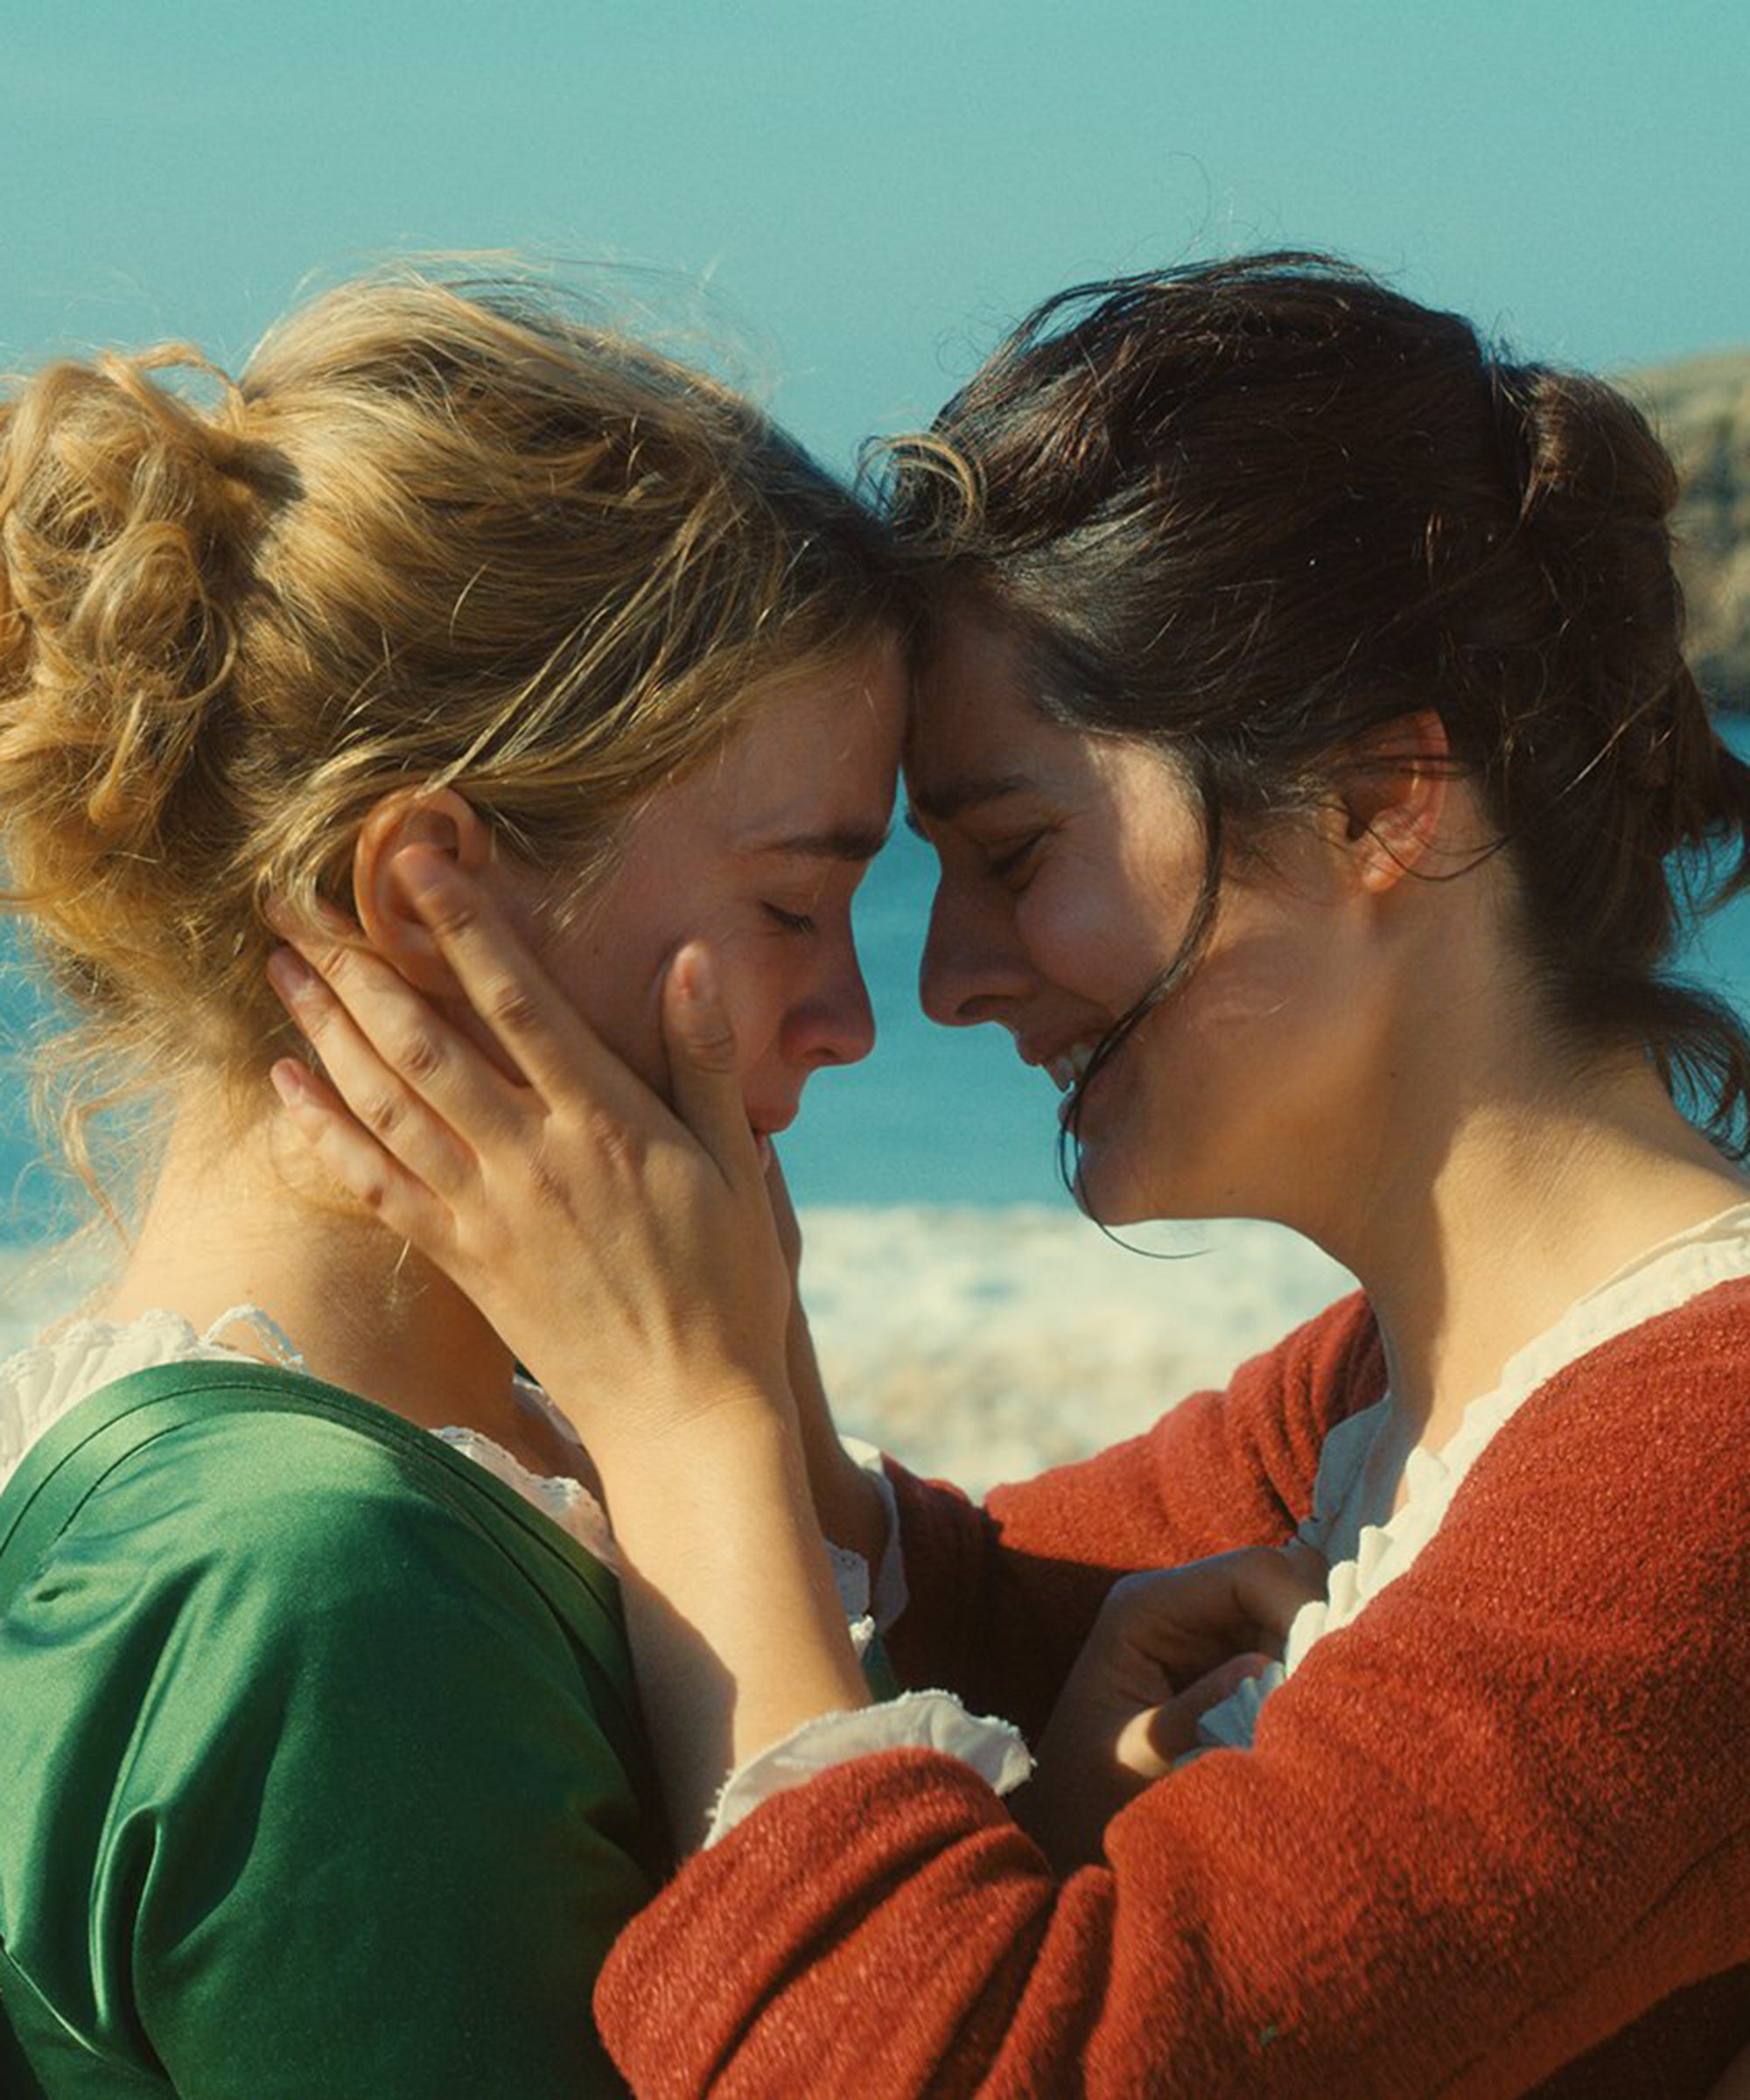 The Buzziest Film At Cannes Is A Queer Love Story Directed By A Woman